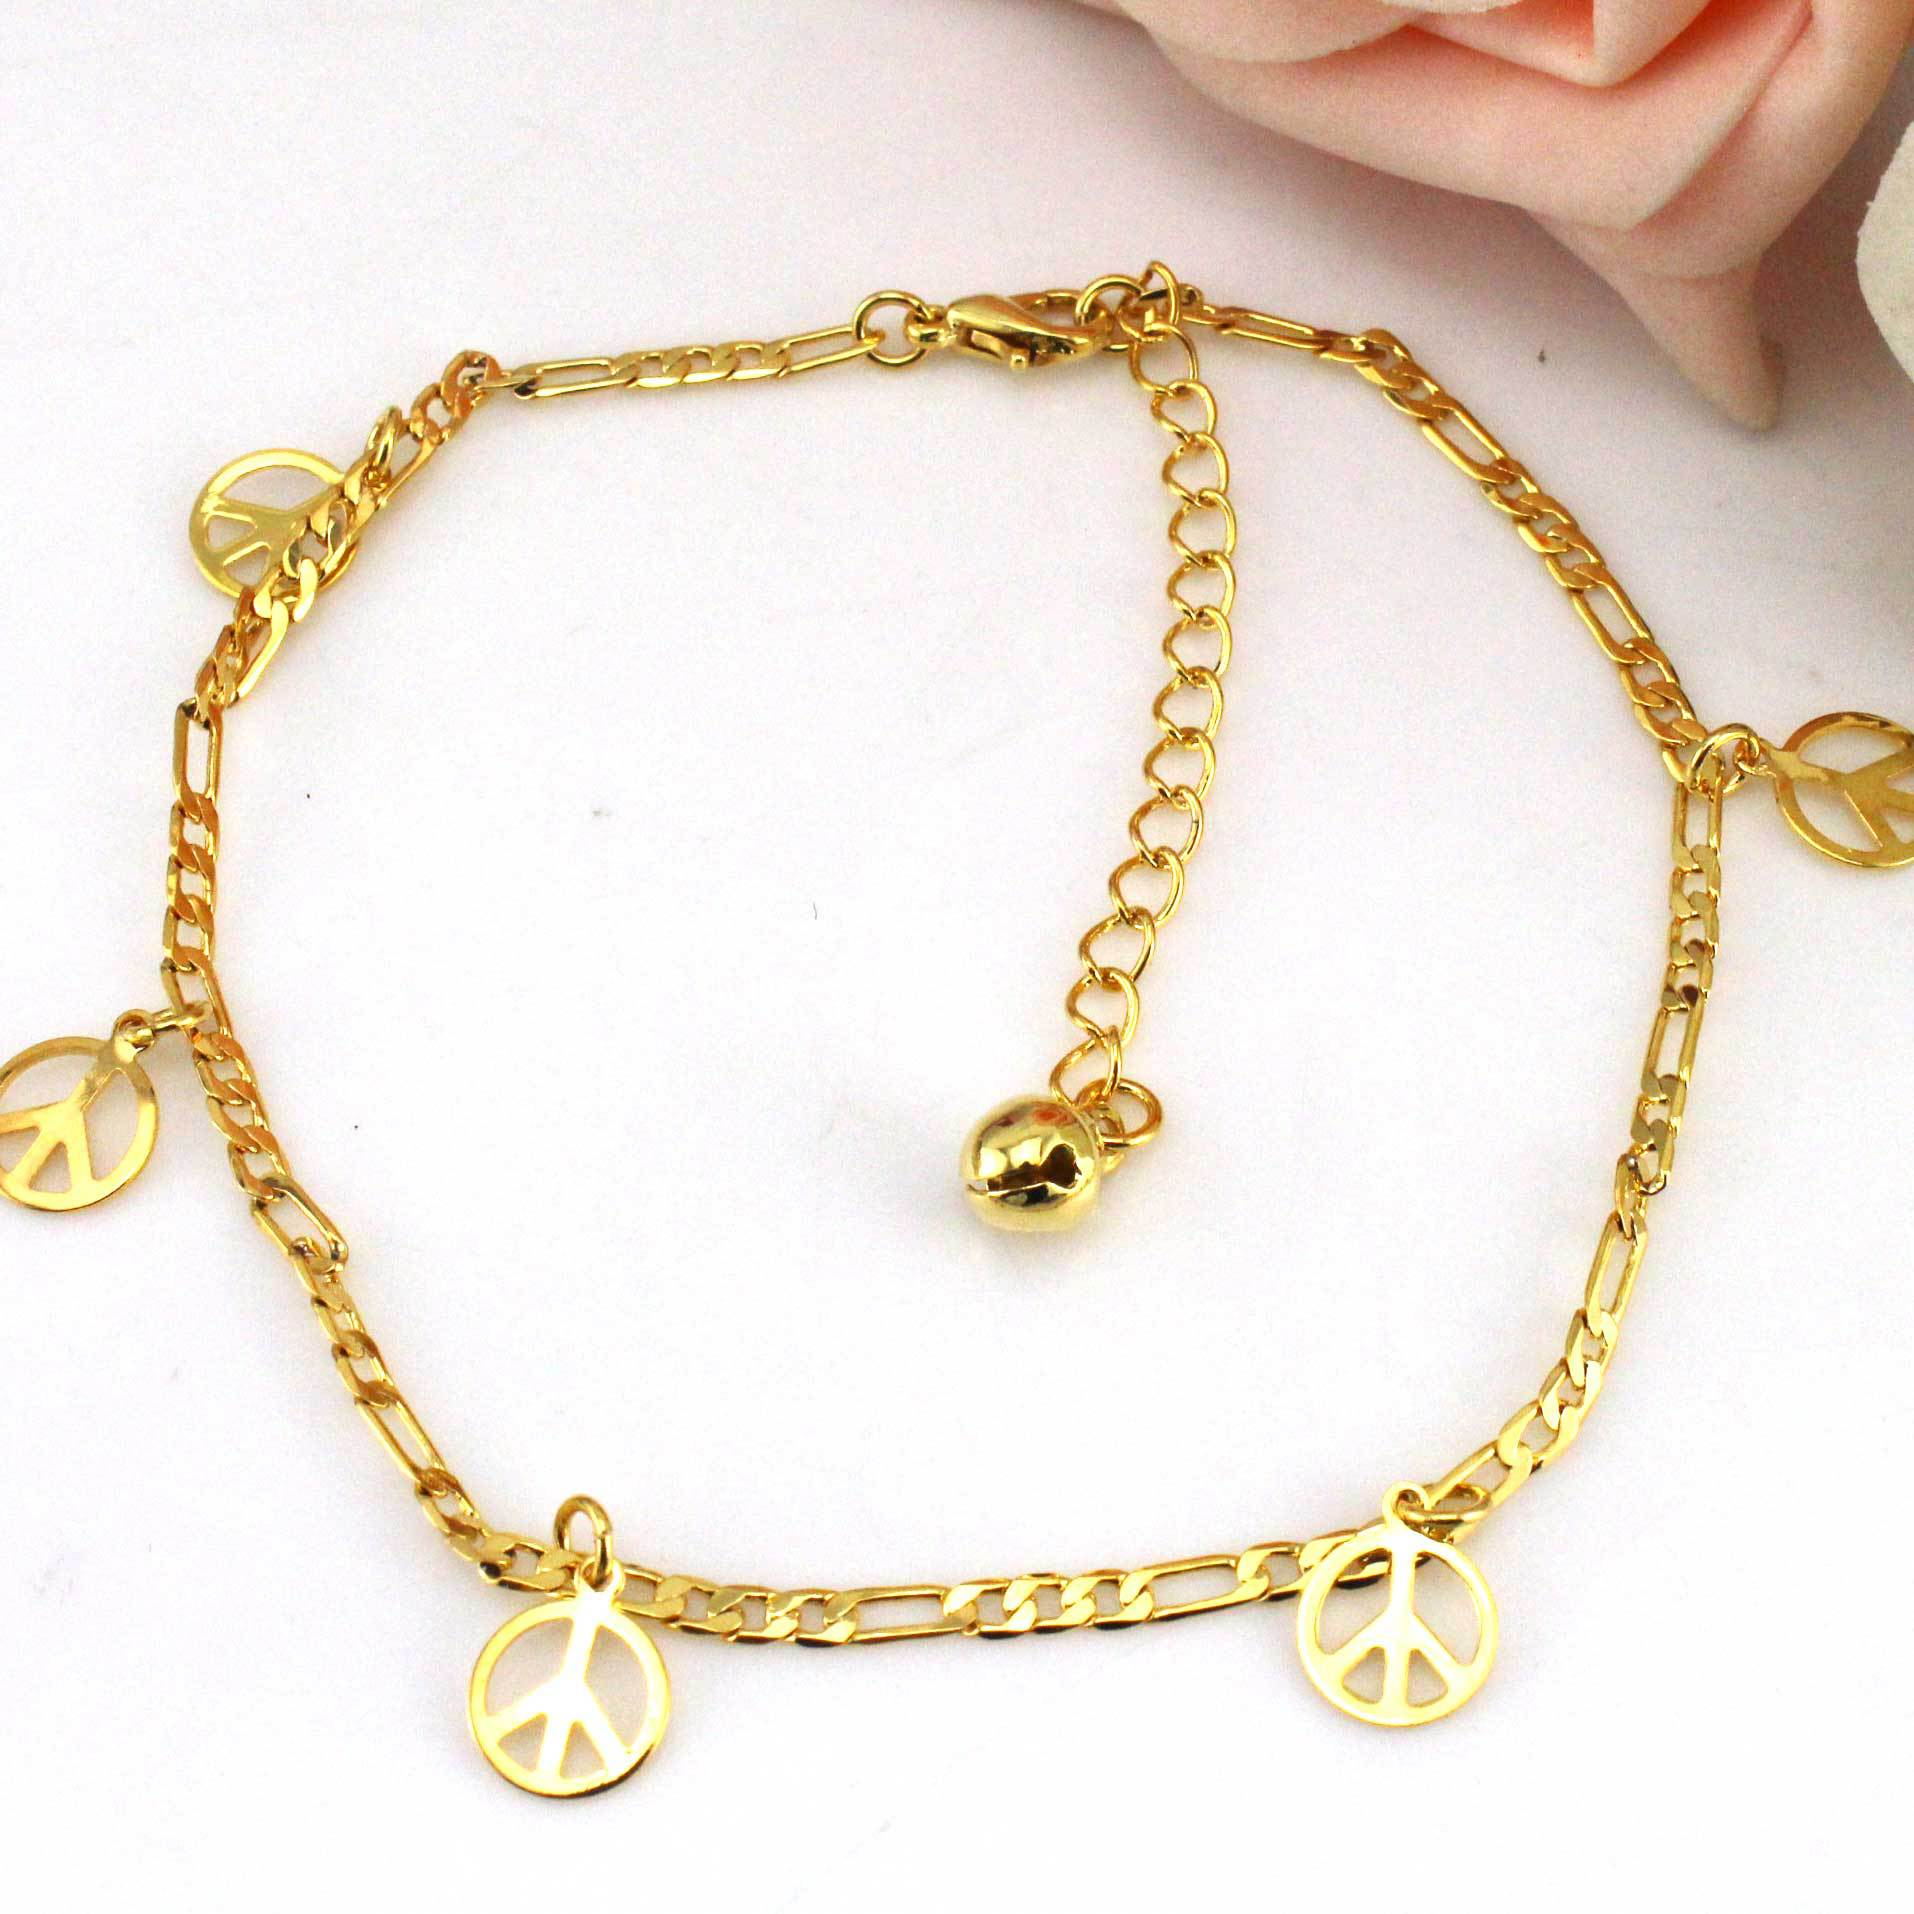 of anklet with p palmbeach two gold s bracelets puffed tone jewelry charms bracelet ankle in picture heart